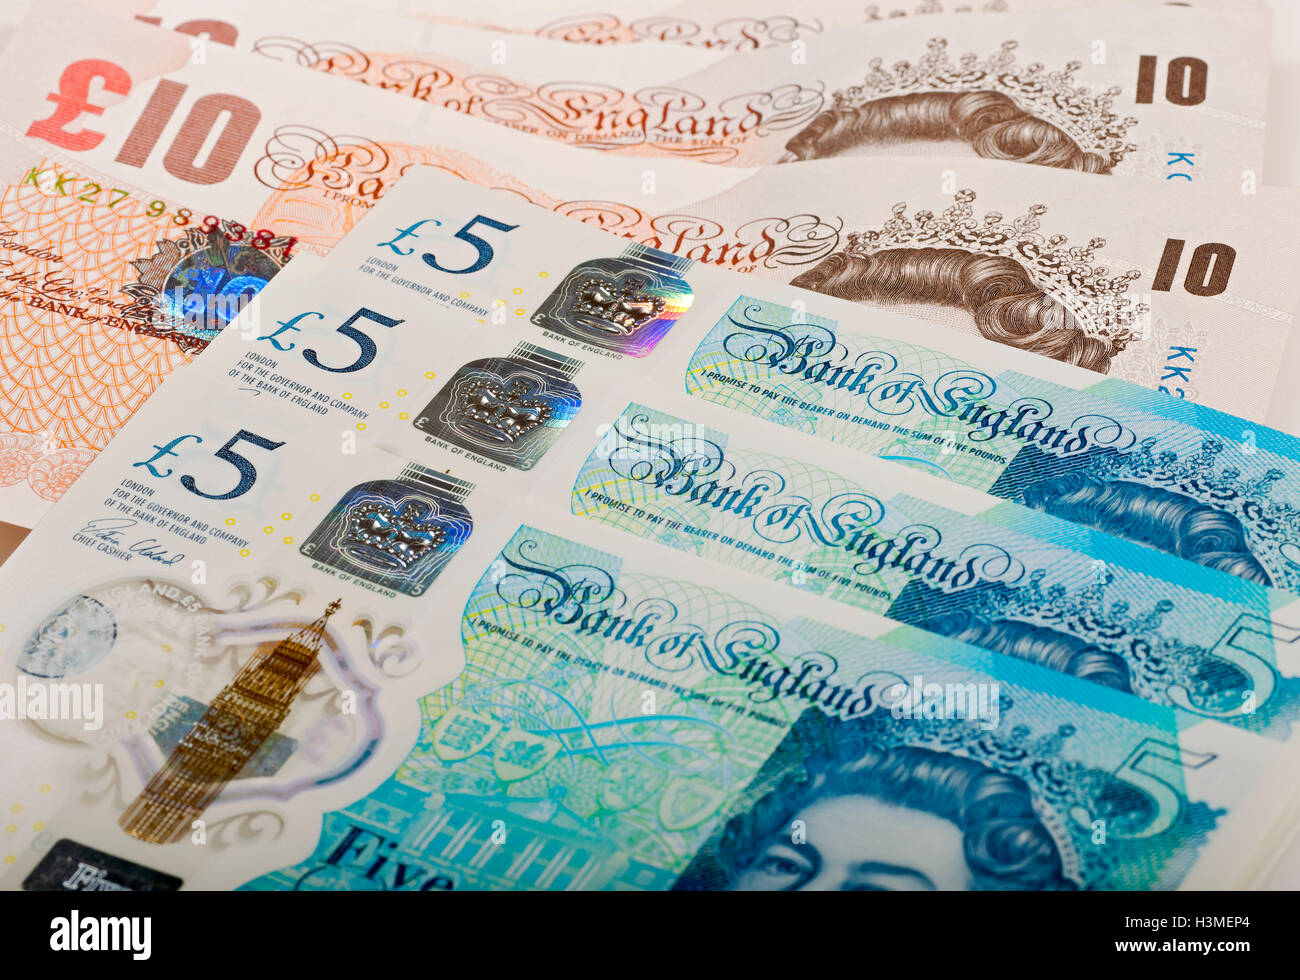 New polymer five pound notes and paper ten pound notes England UK United Kingdom GB Great Britain - Stock Image